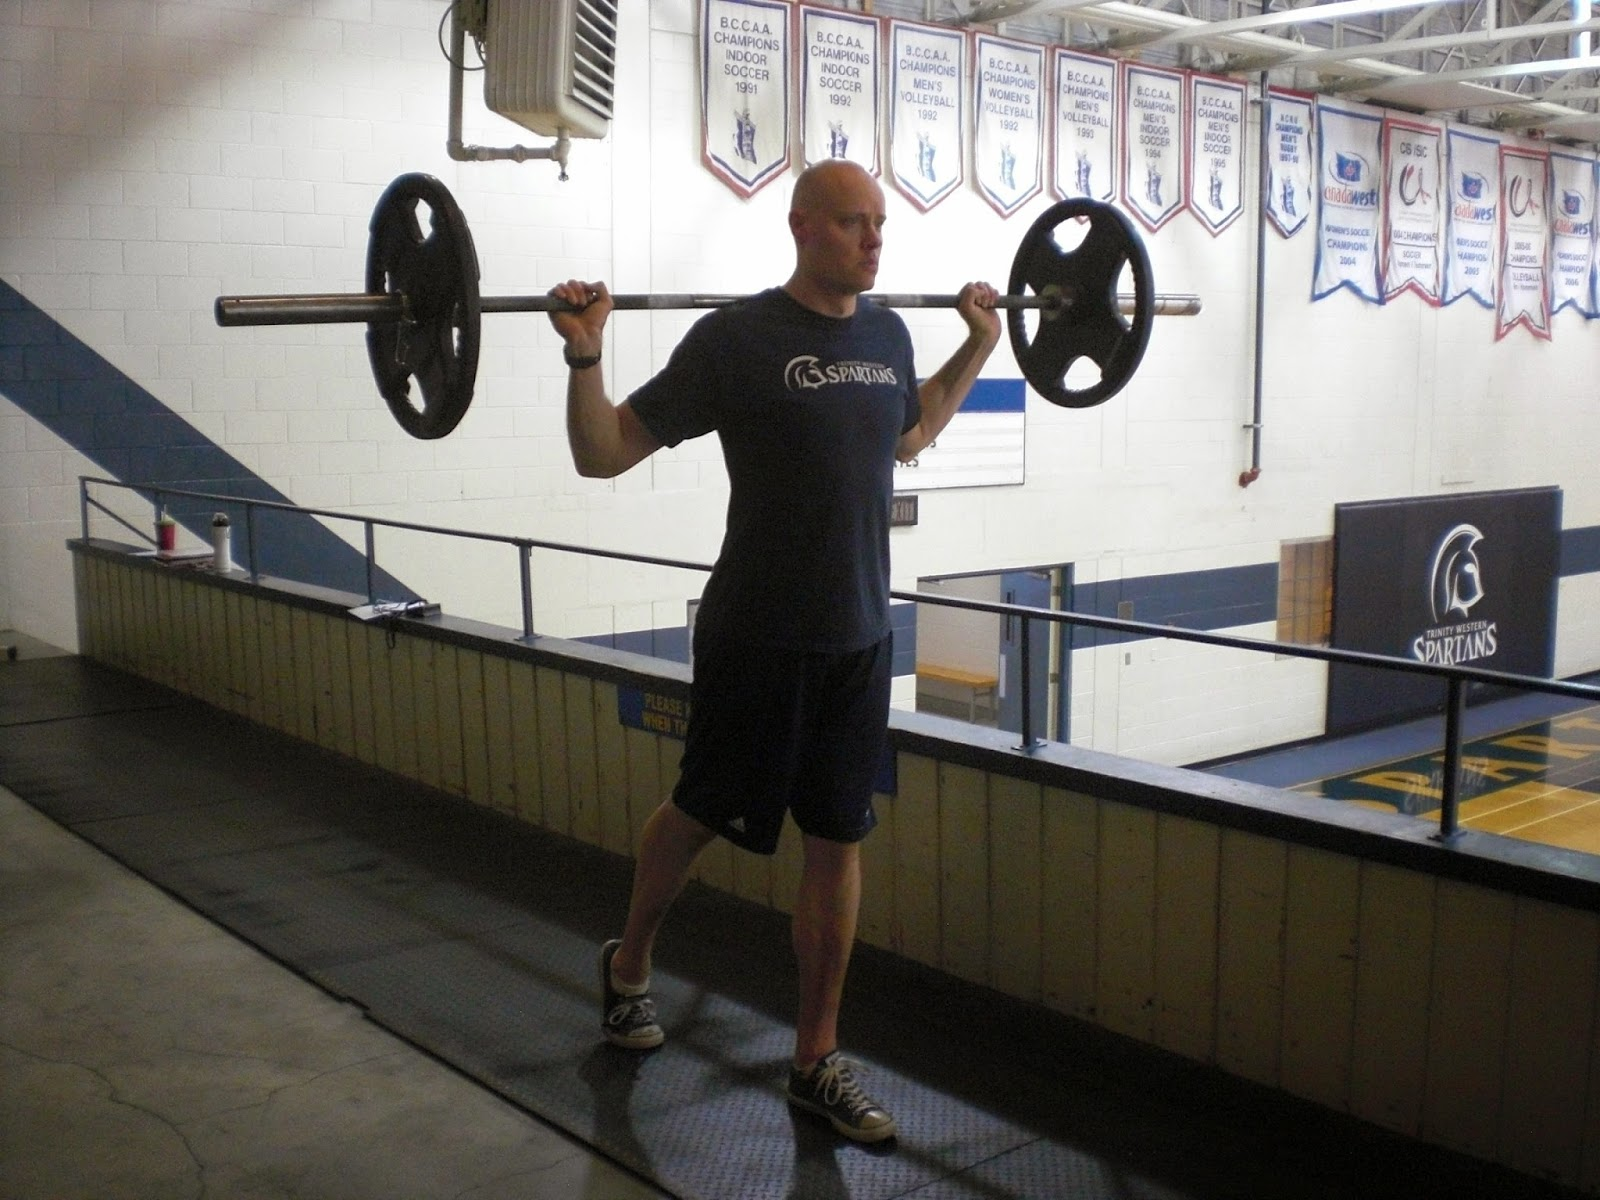 Note All Of These Walking Barbell Variations Means You Will Be Moving With A 7 Foot Long Bar Sure Have The E To Do This Safely Without Ping